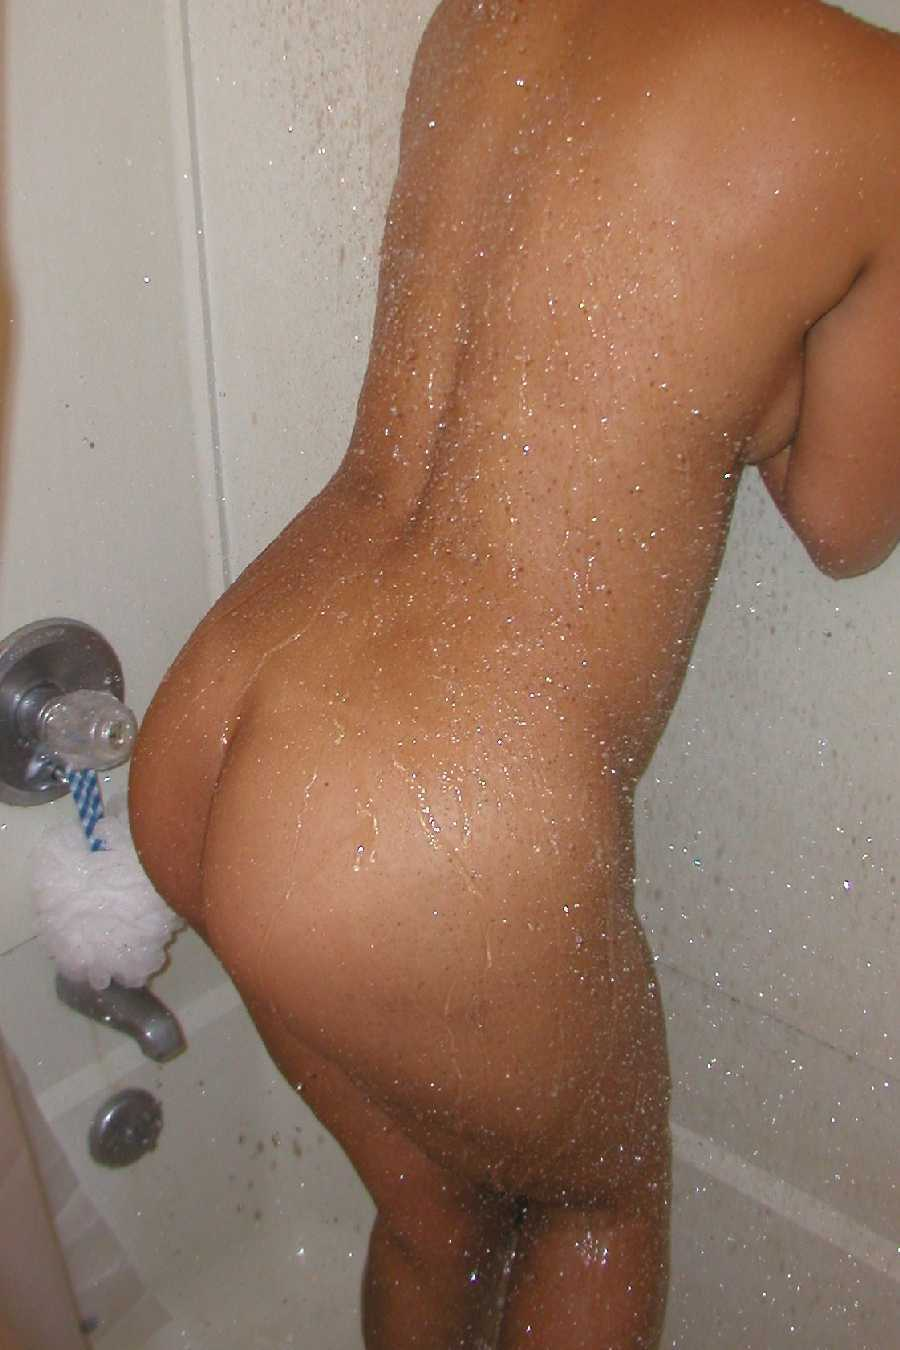 Ass in Shower Dare